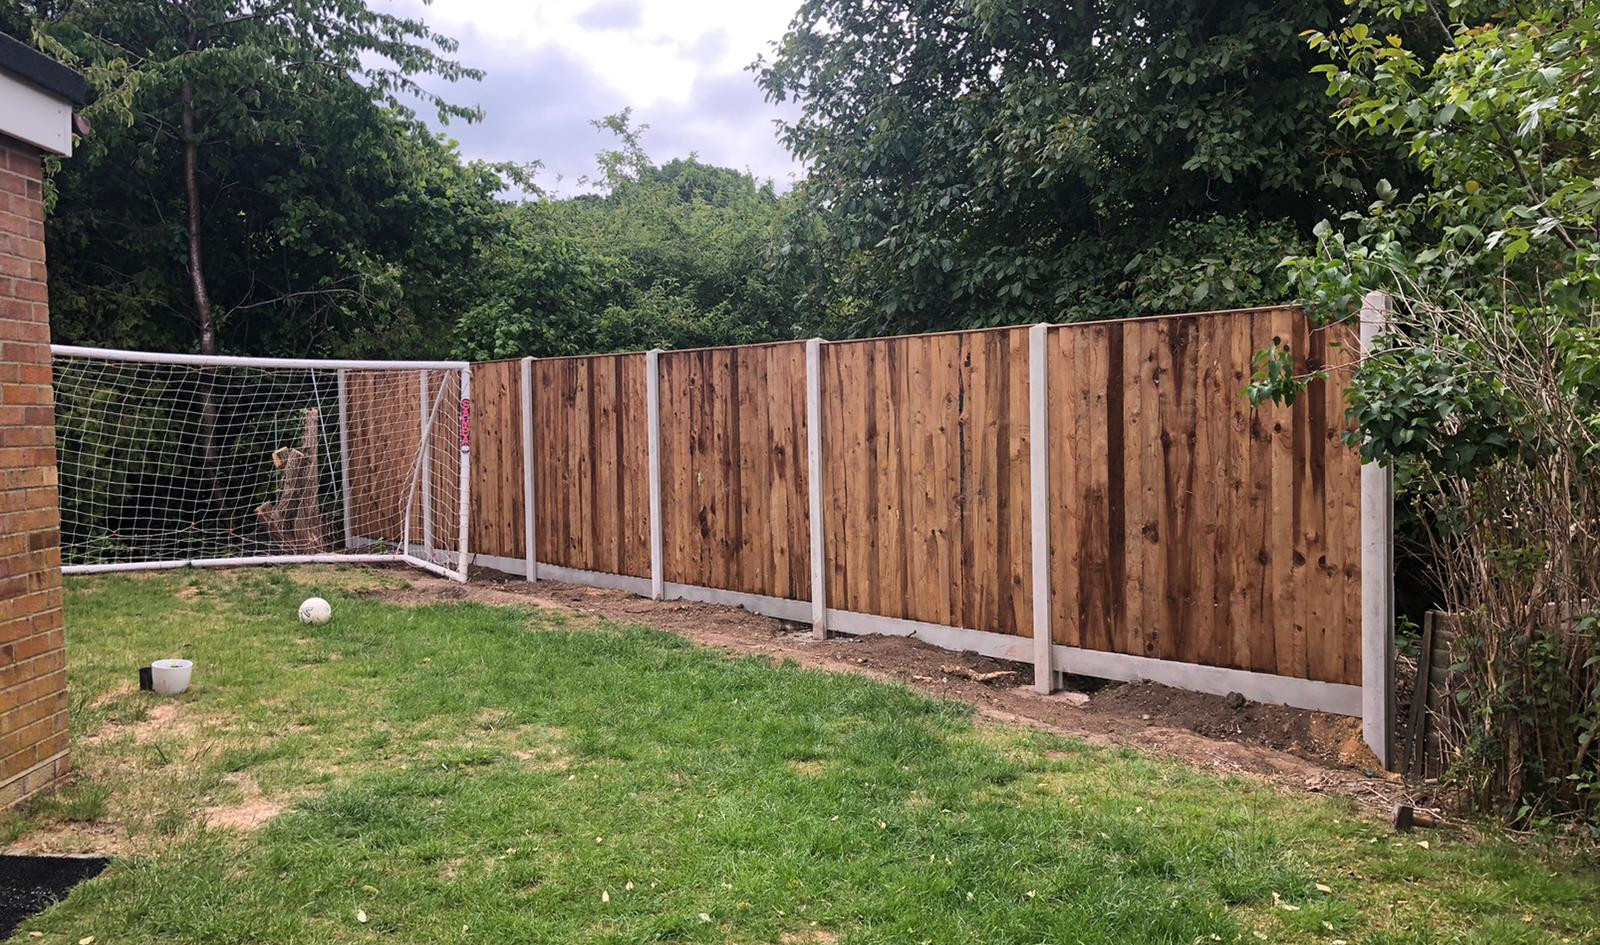 Concrete fence posts with wooden fence panels